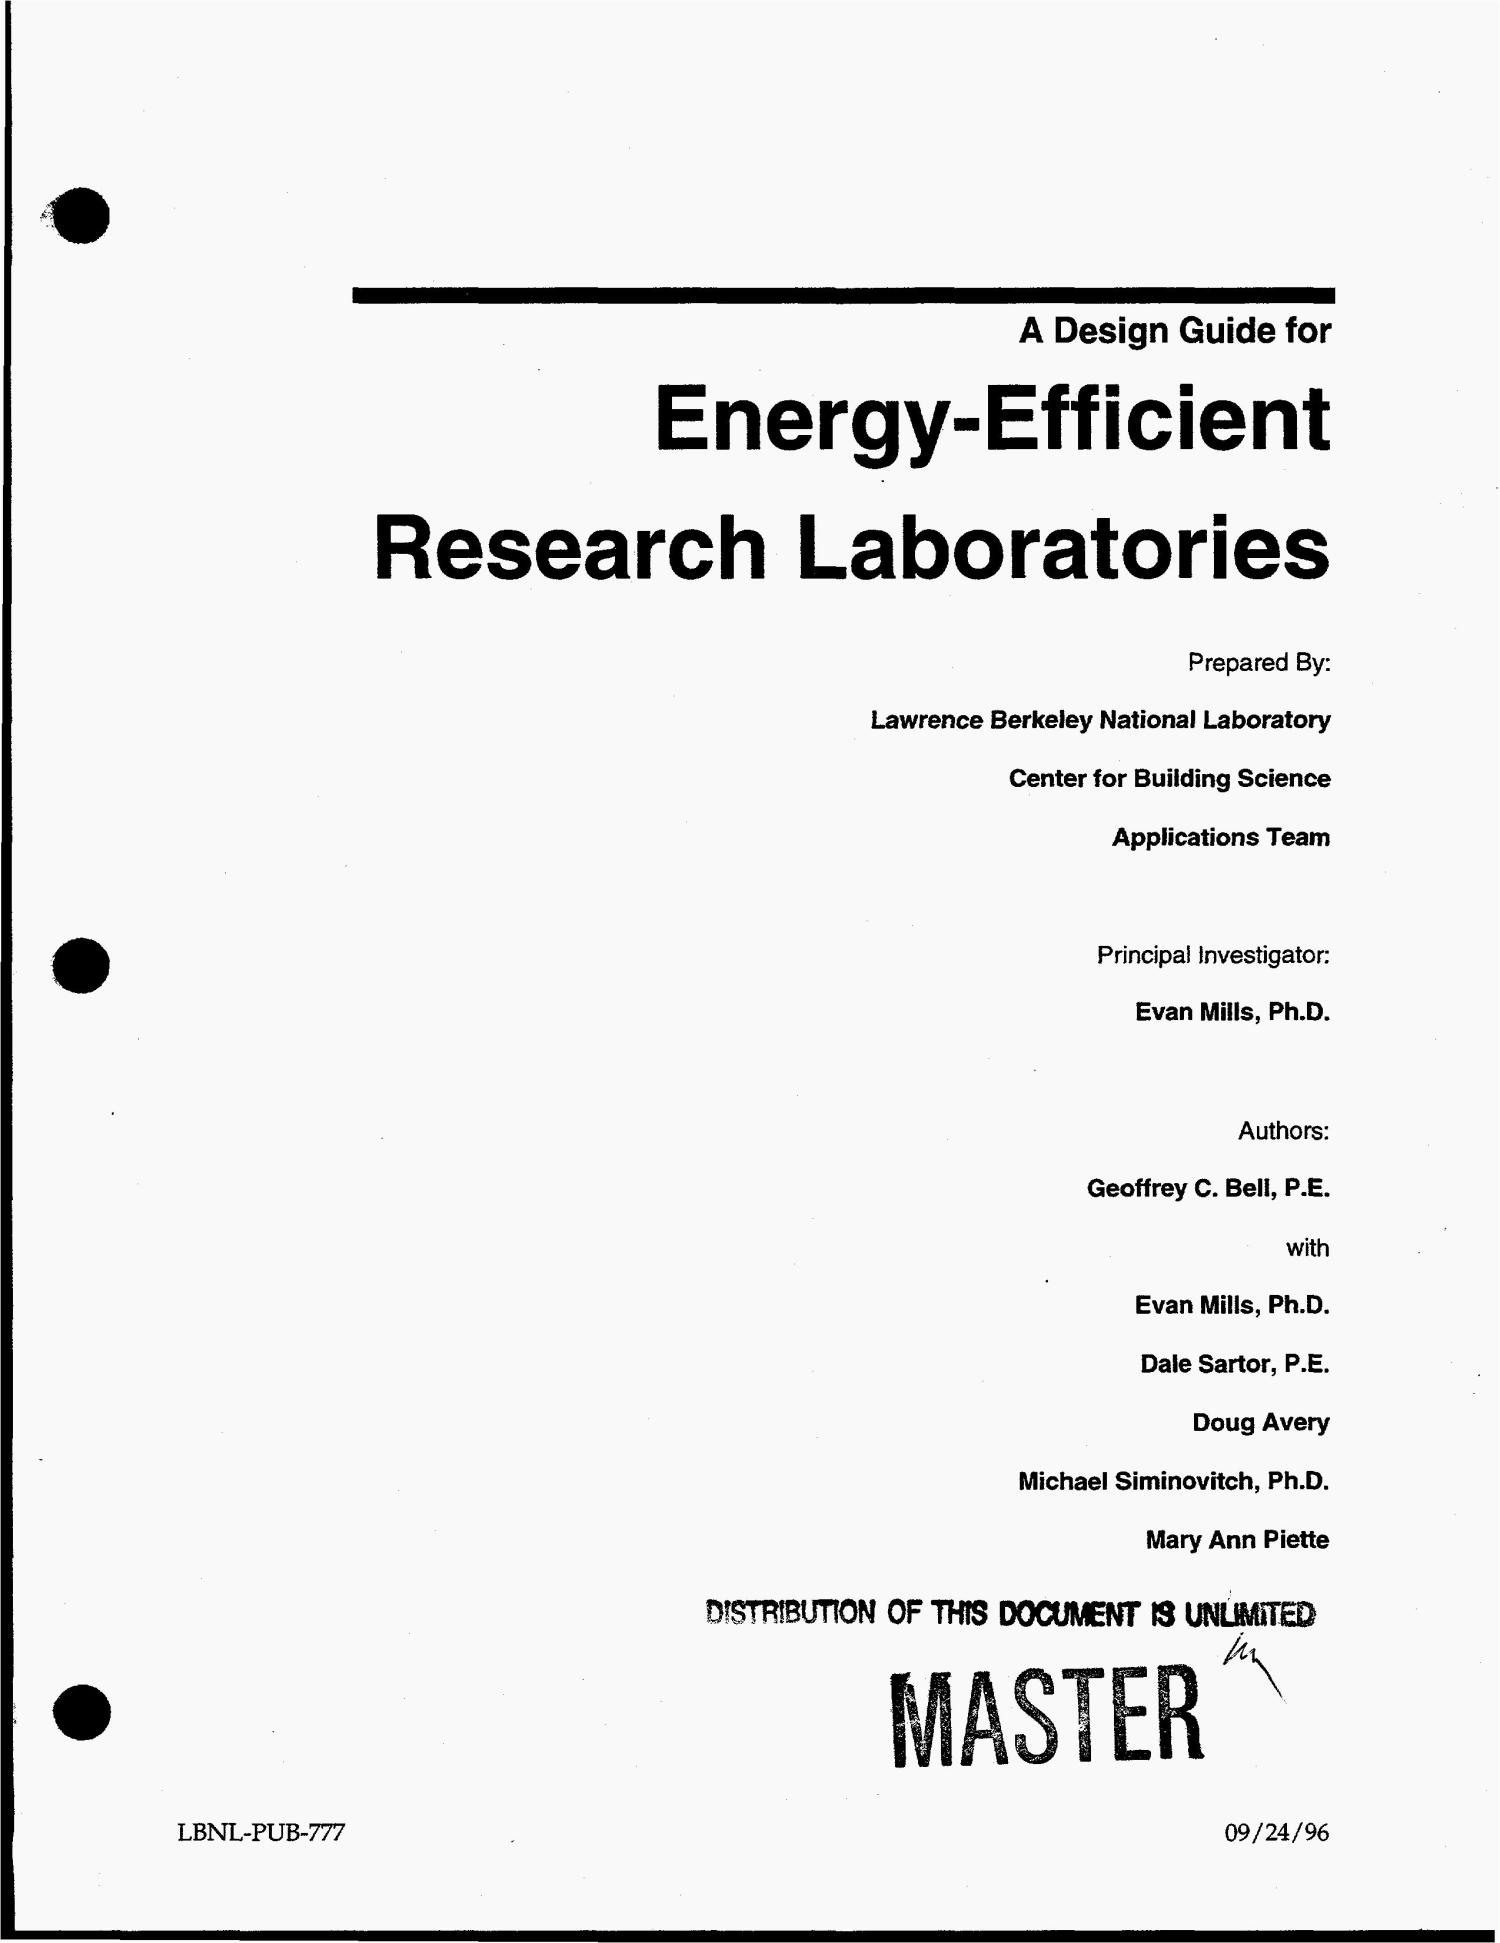 A design guide for energy-efficient research laboratories